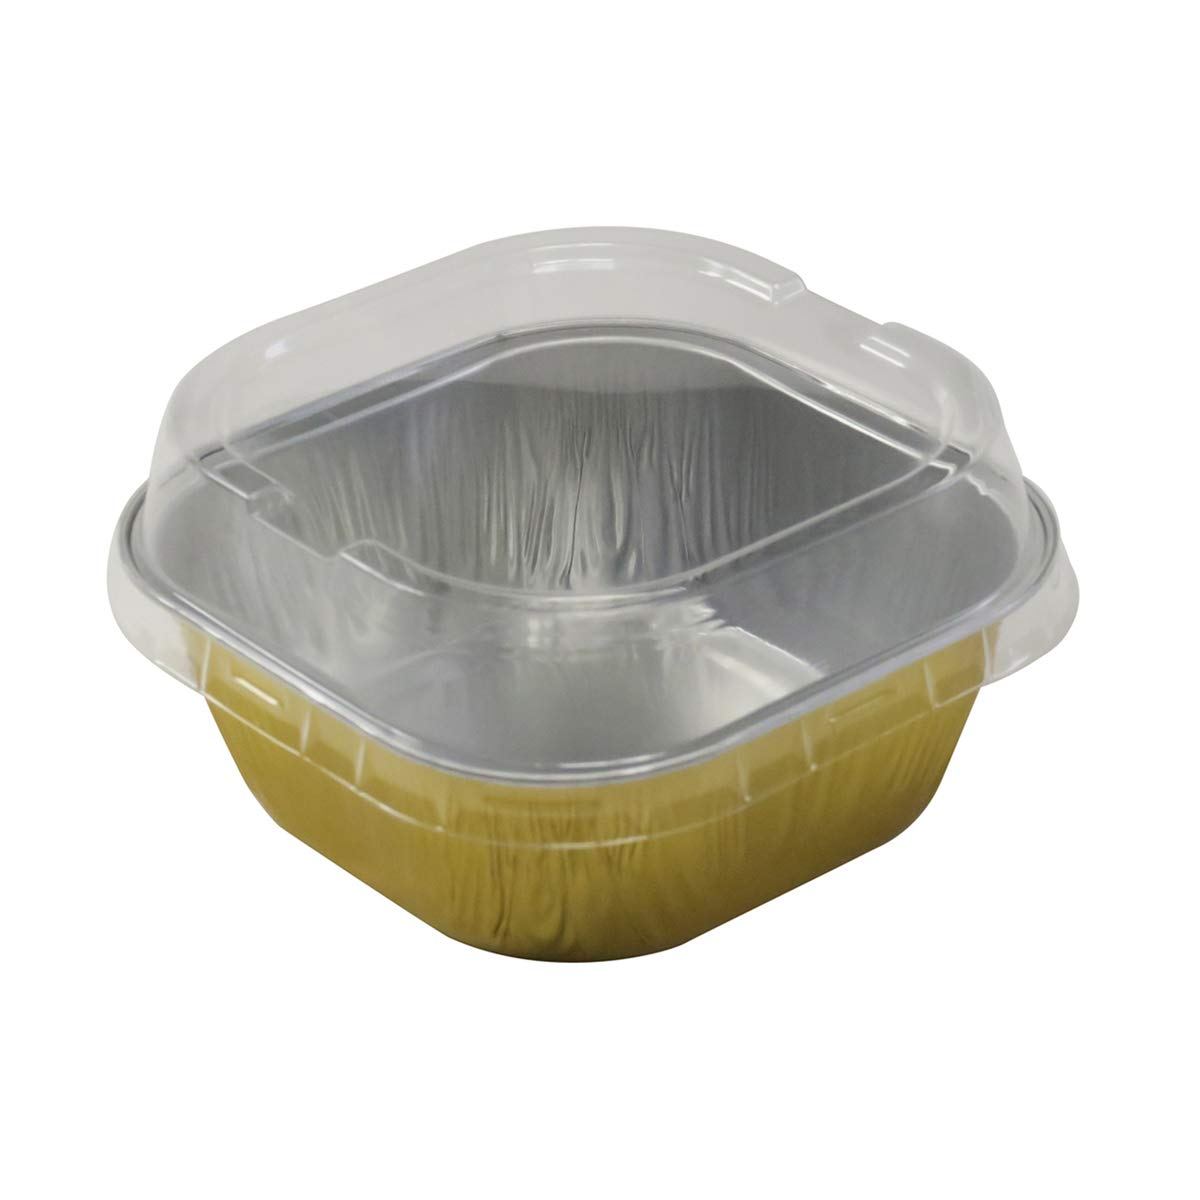 KitchenDance Disposable Aluminum 4'' x 4'' Square 8 ounce Dessert Pans W/Lids - #ALU6P (GOLD, 50)